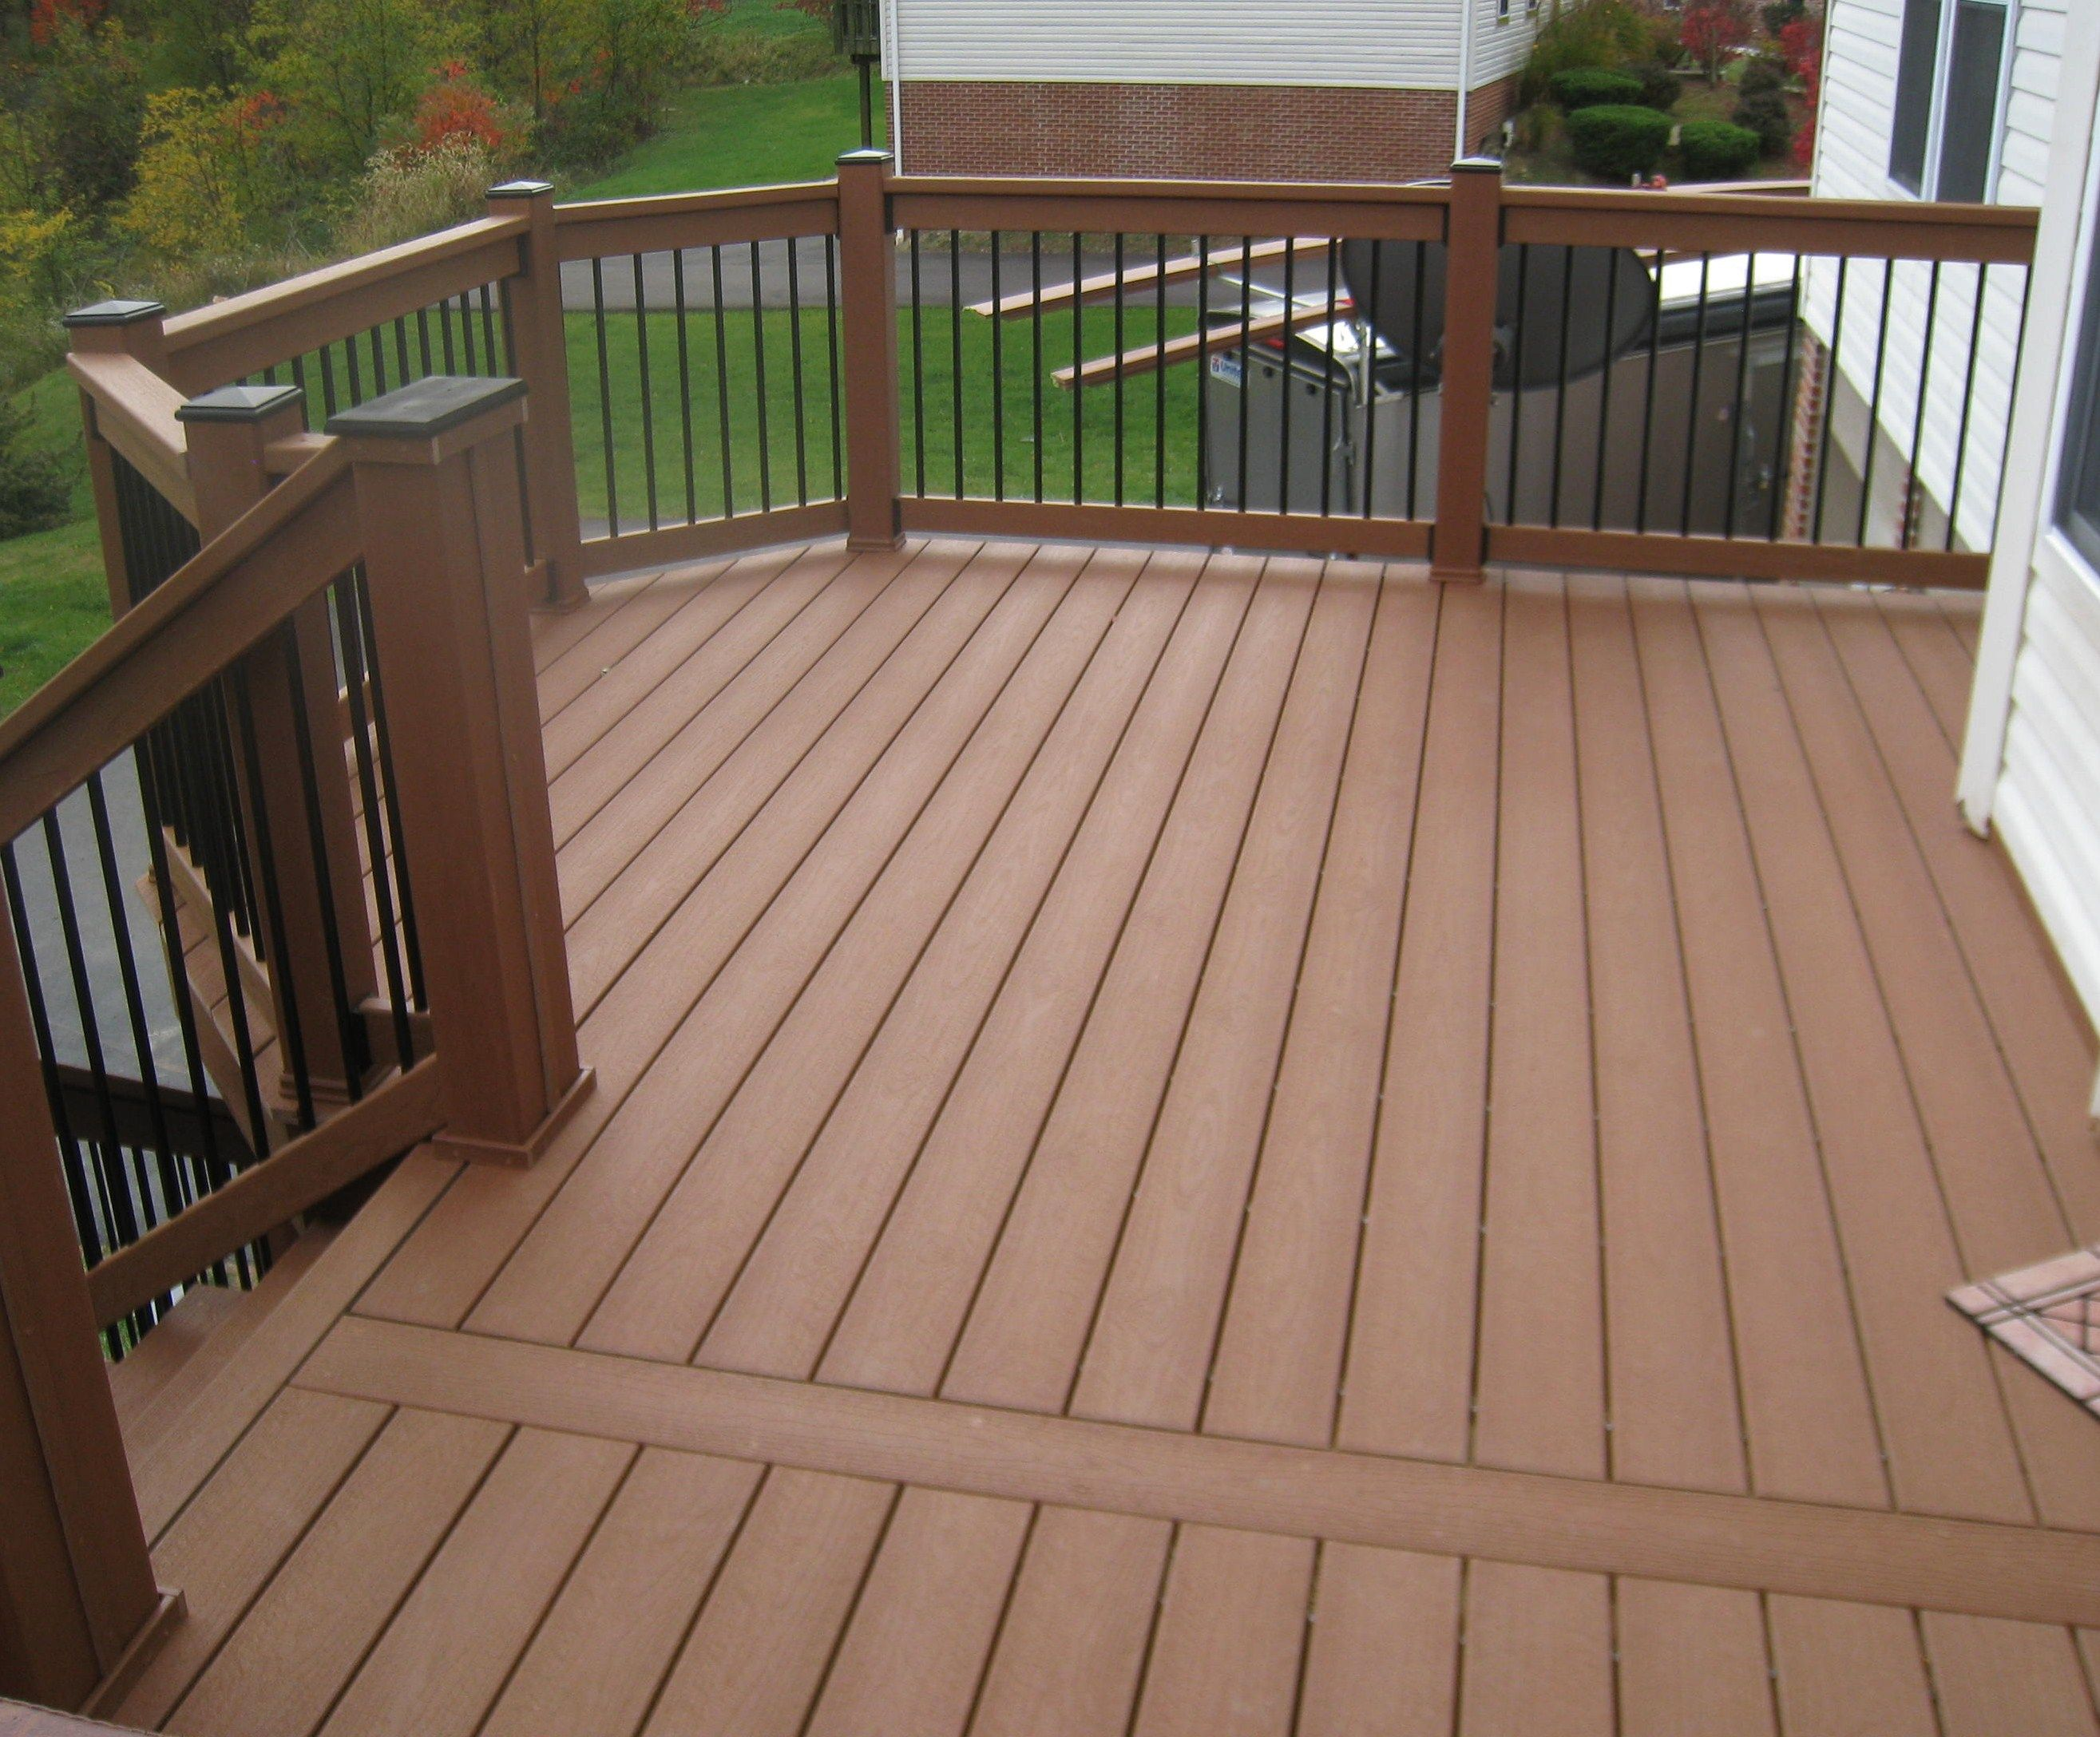 Best Variety Of Railing Options For Decks Outdoor Stair 640 x 480